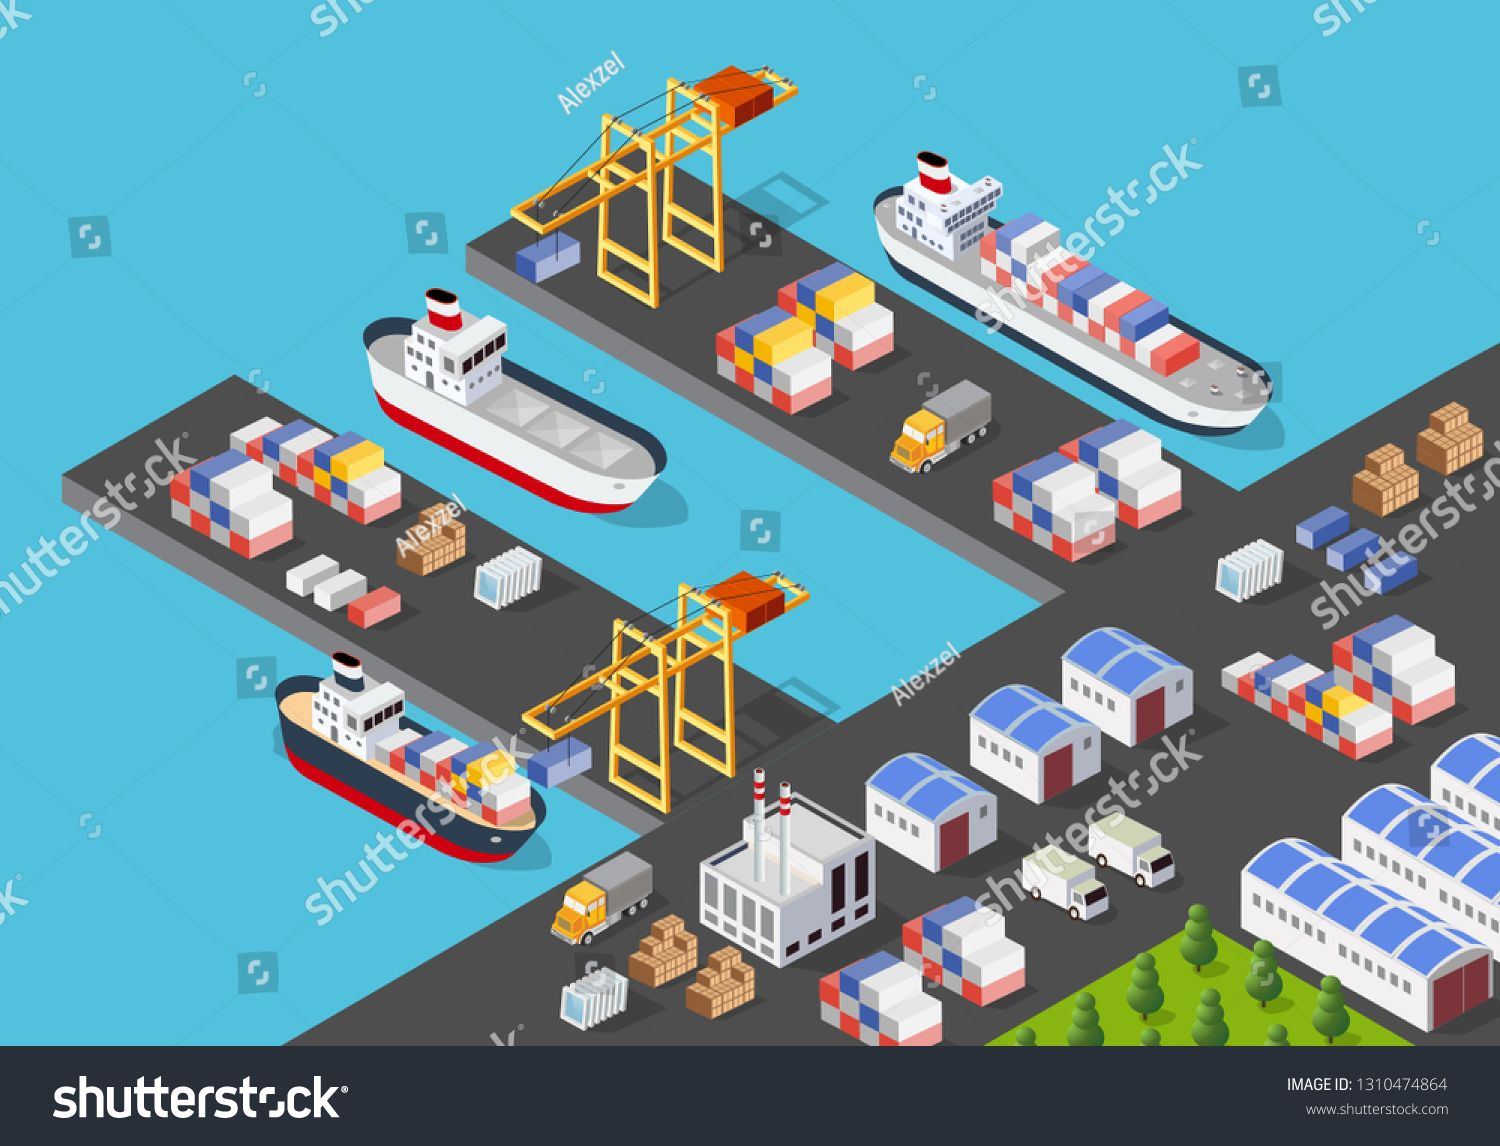 Isometric port cargo ship cargo seaport at sea with crane container transport vessel logistic illustration #Sponsored , #AFFILIATE, #ship#seaport#sea#Isometric